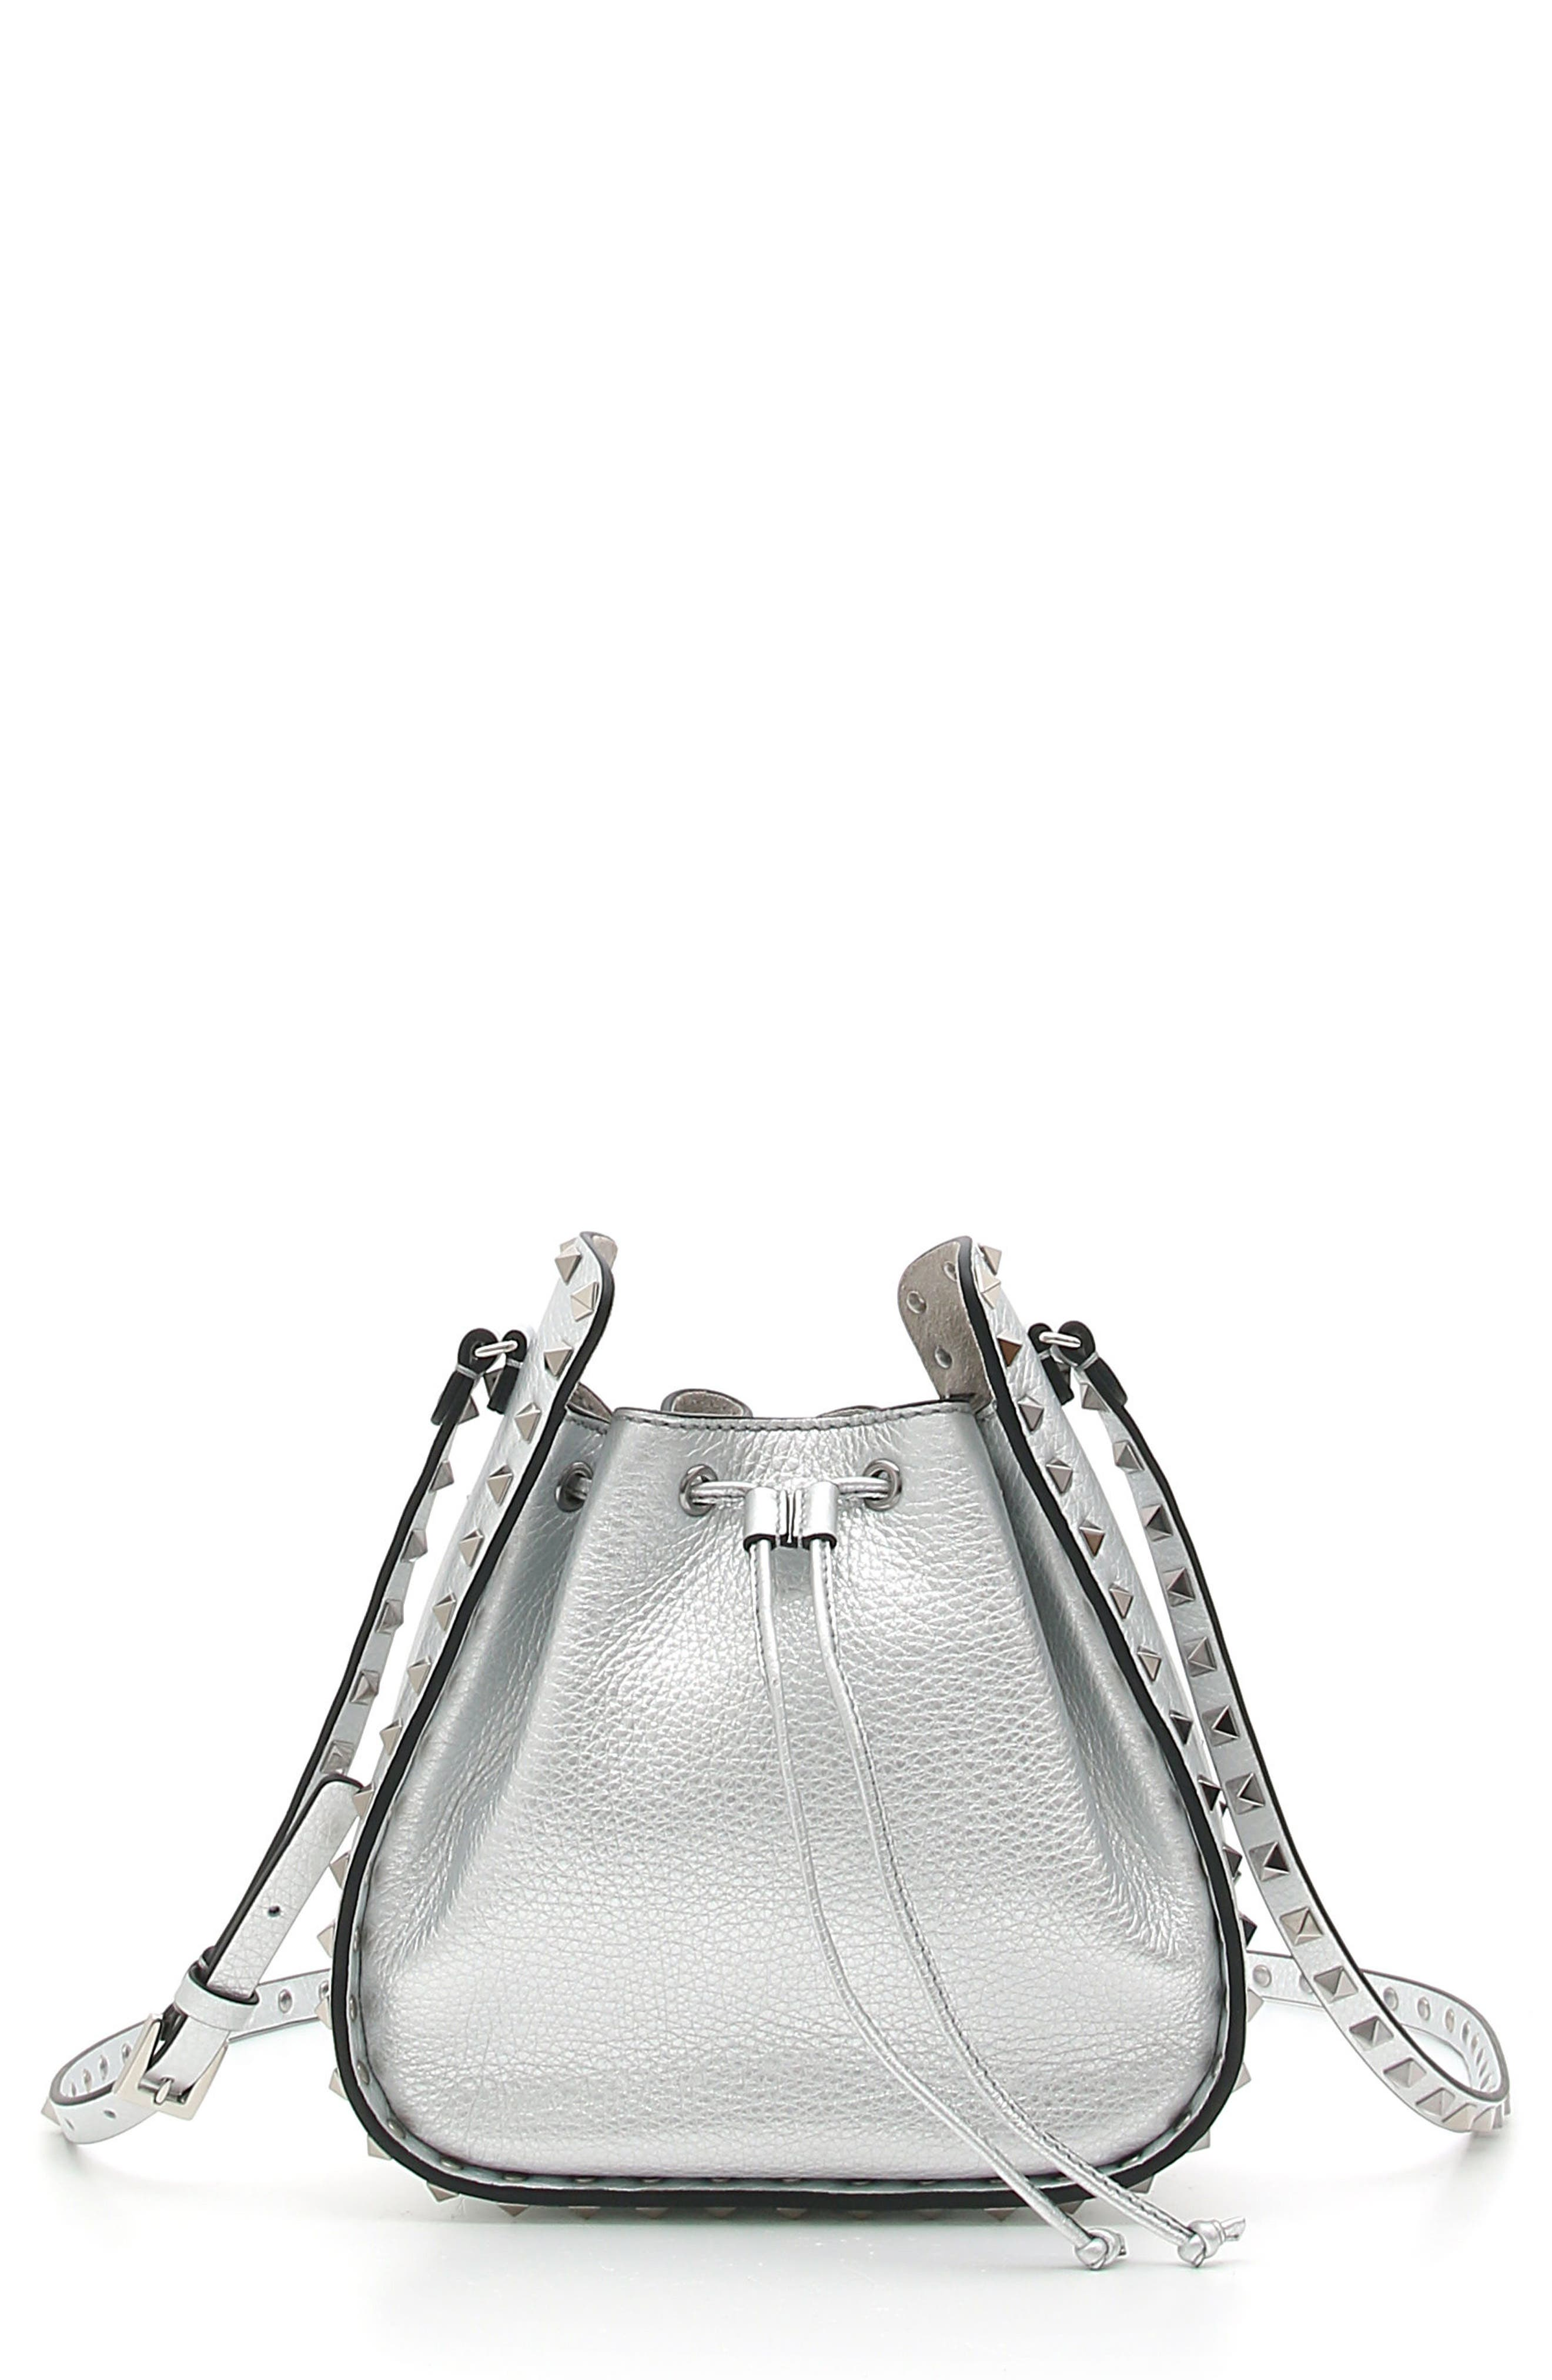 Rockstud Metallic Leather Bucket Bag,                         Main,                         color, Silver